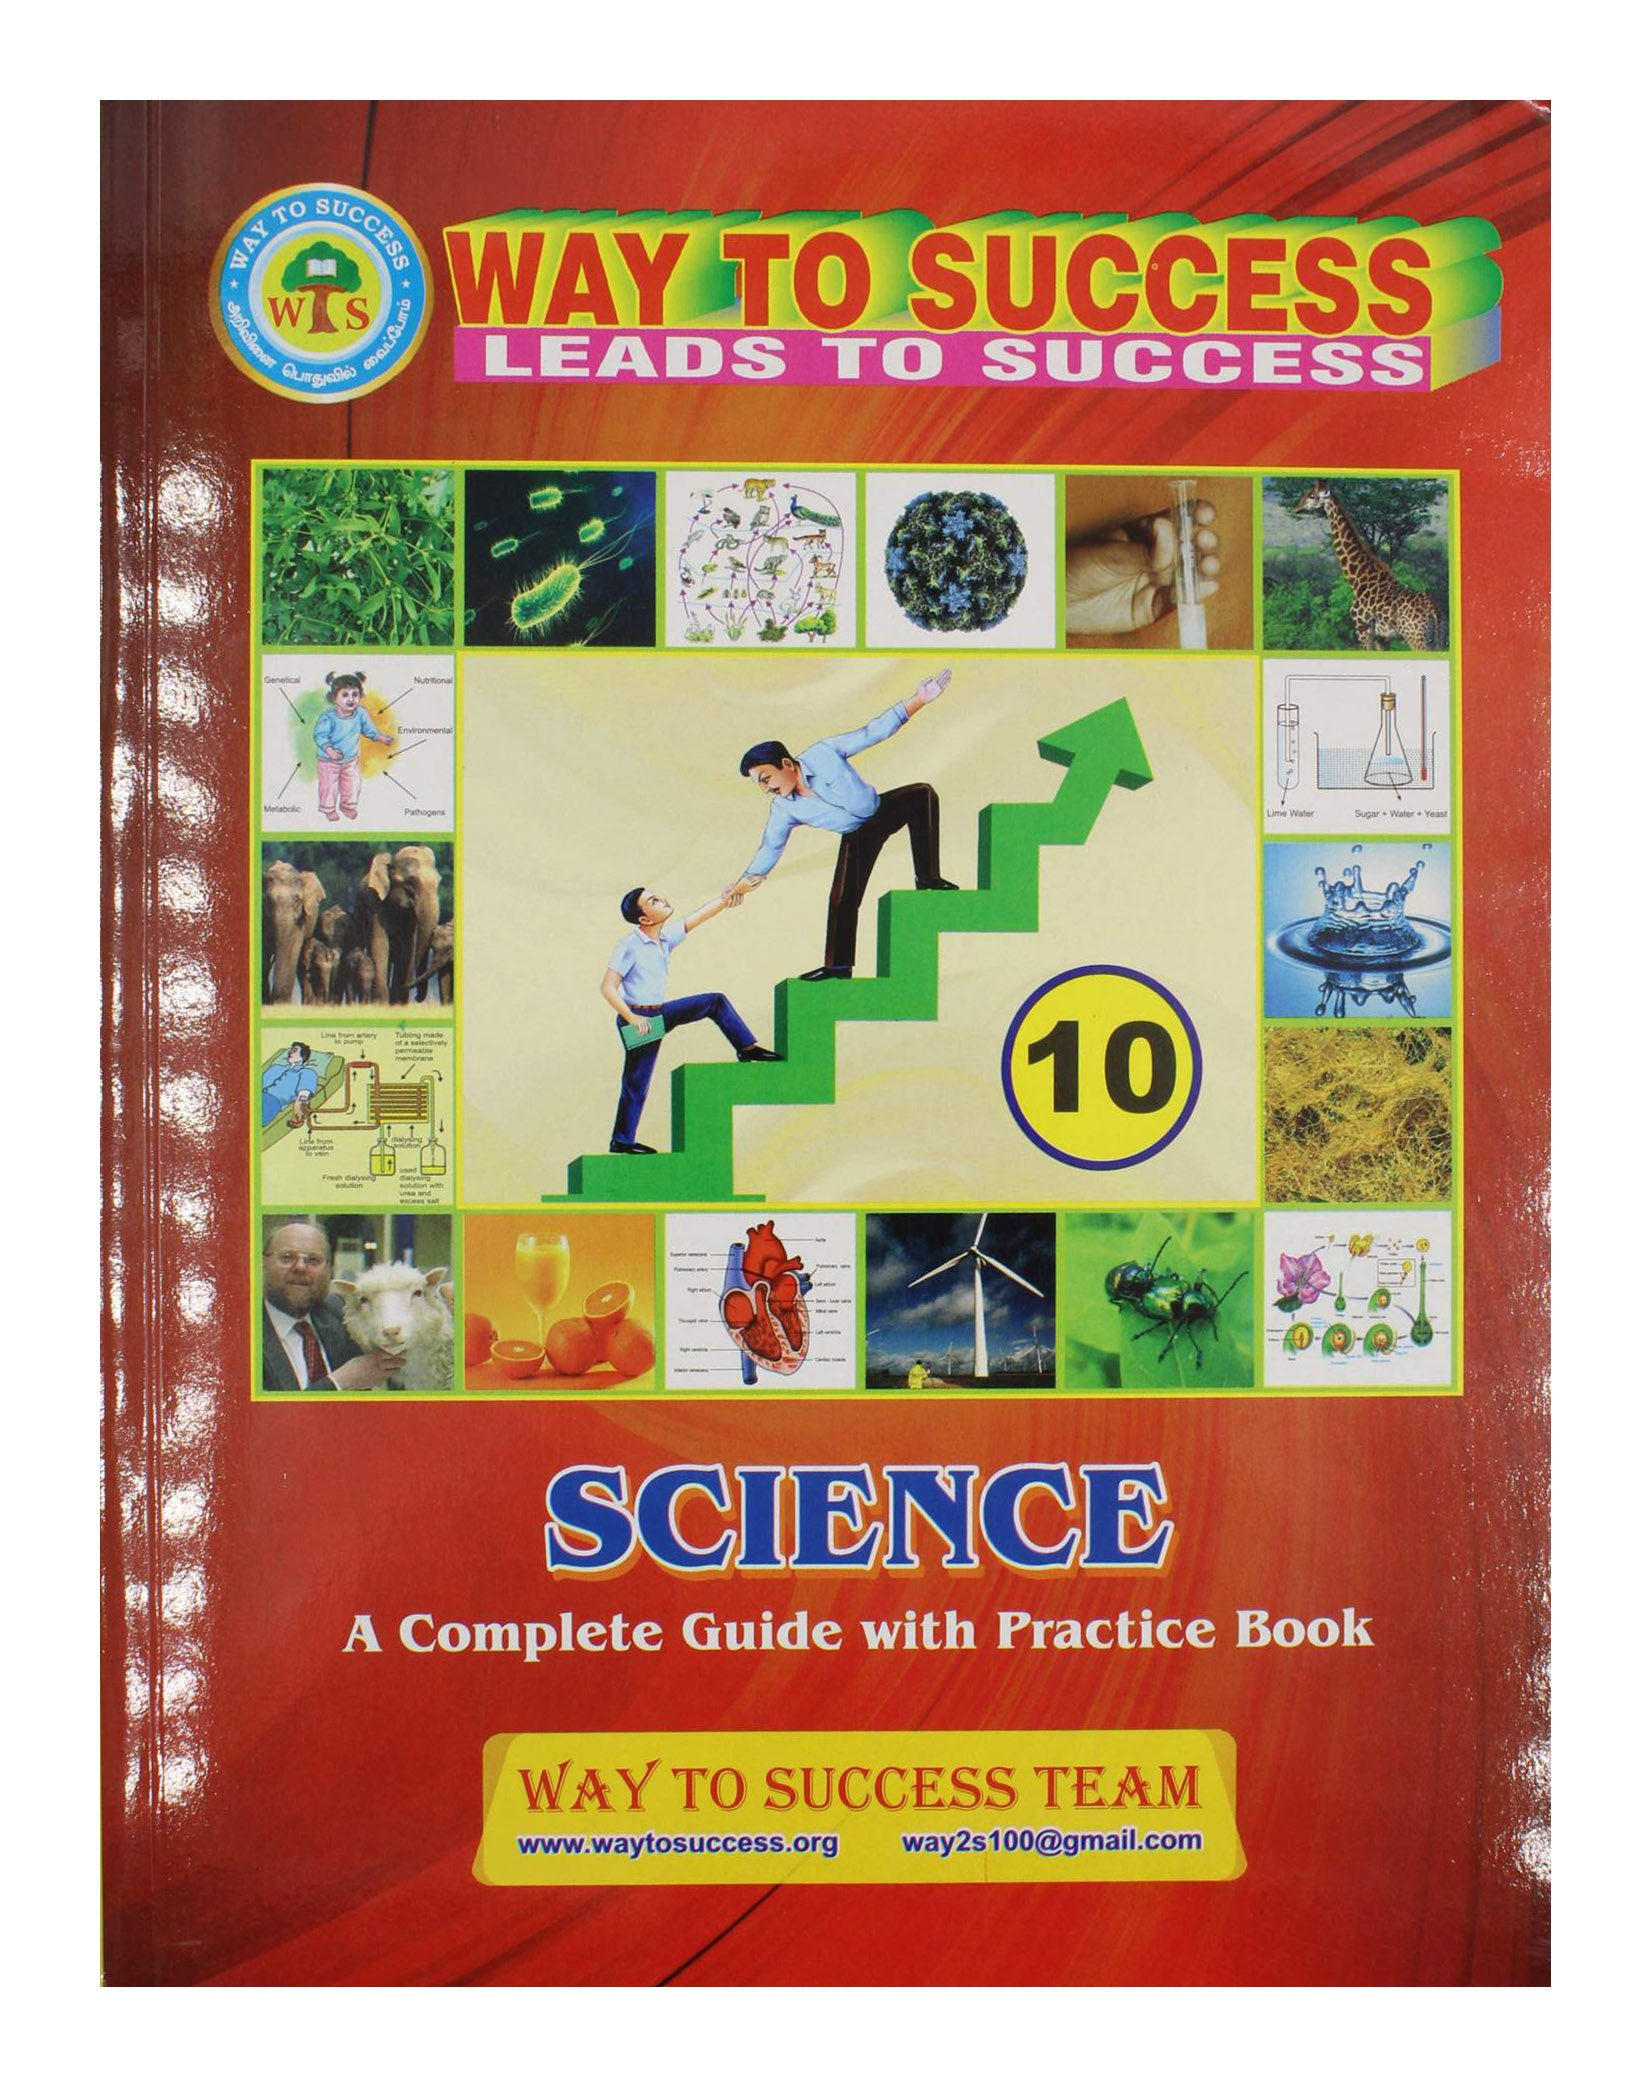 way to success science practice book amazon in dr s denis rh amazon in